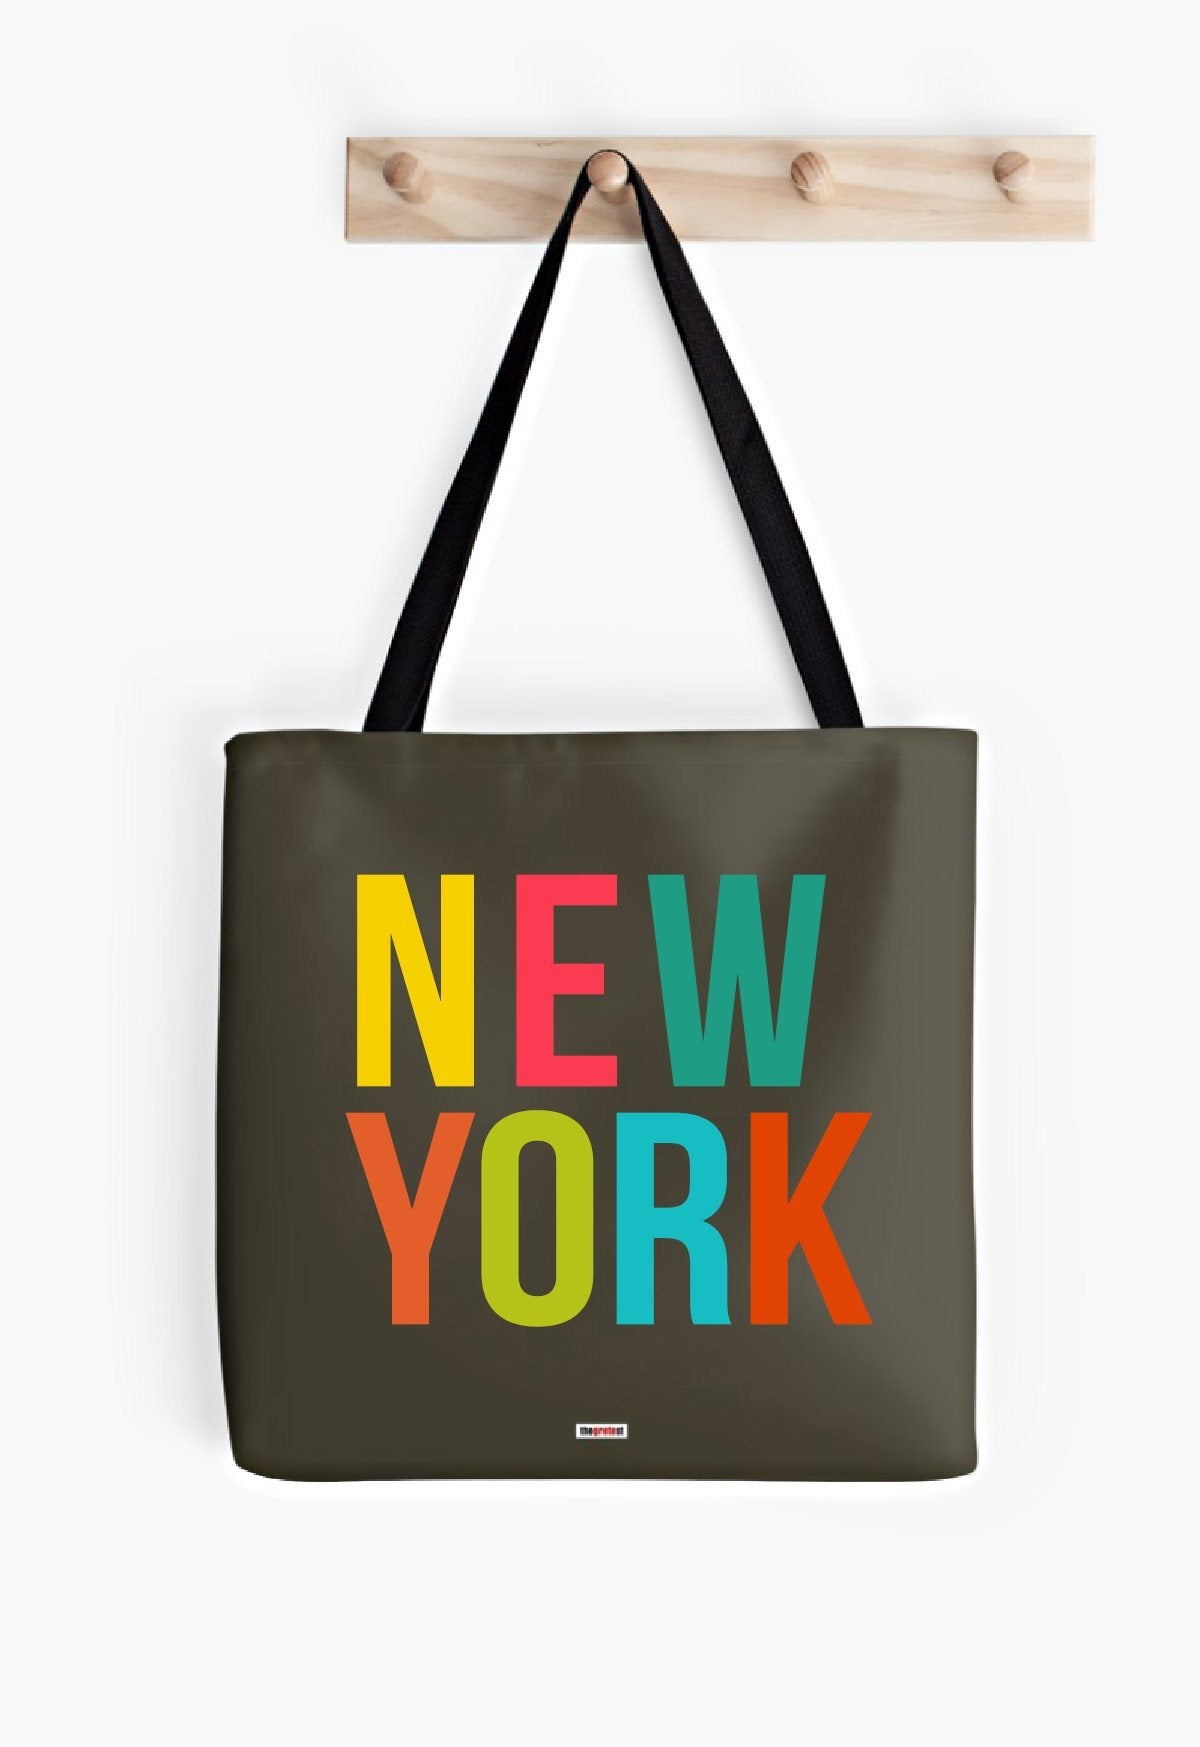 New York Tote bag - New York bag-TheGretest